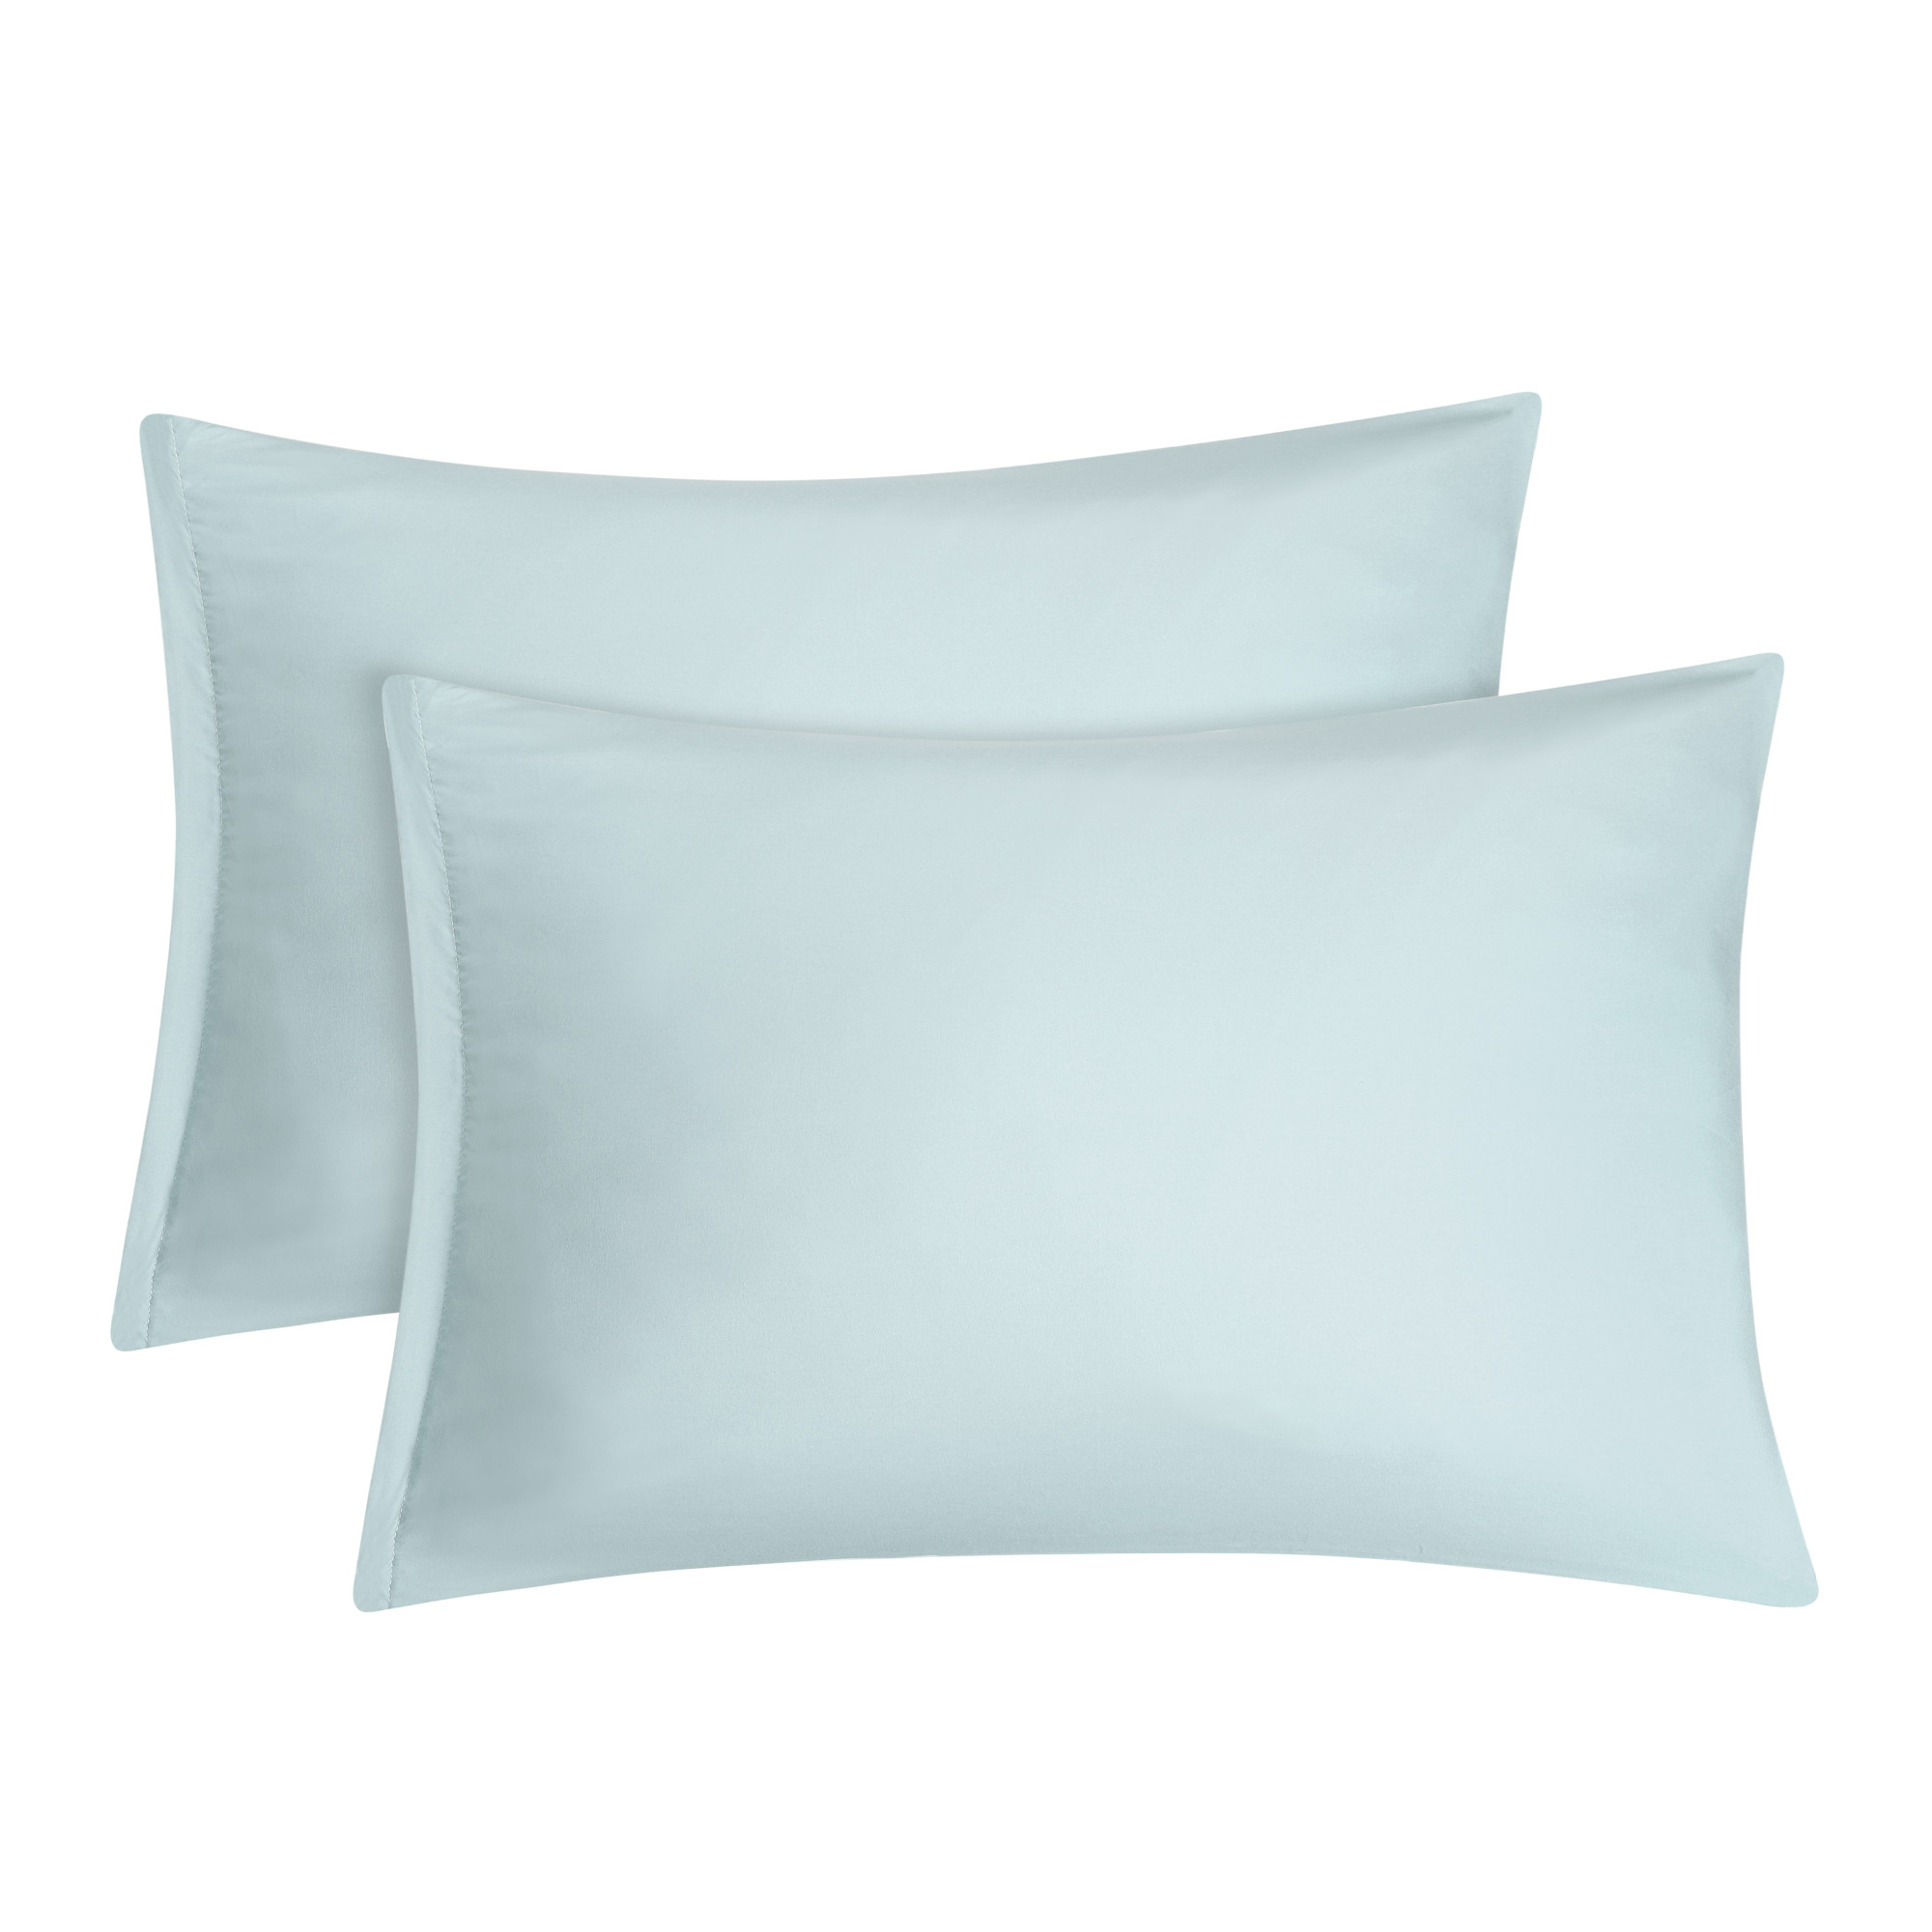 2 pack travel size pillowcases soft 1800 microfiber pillow case with zipper closure spa blue bedding pillow covers